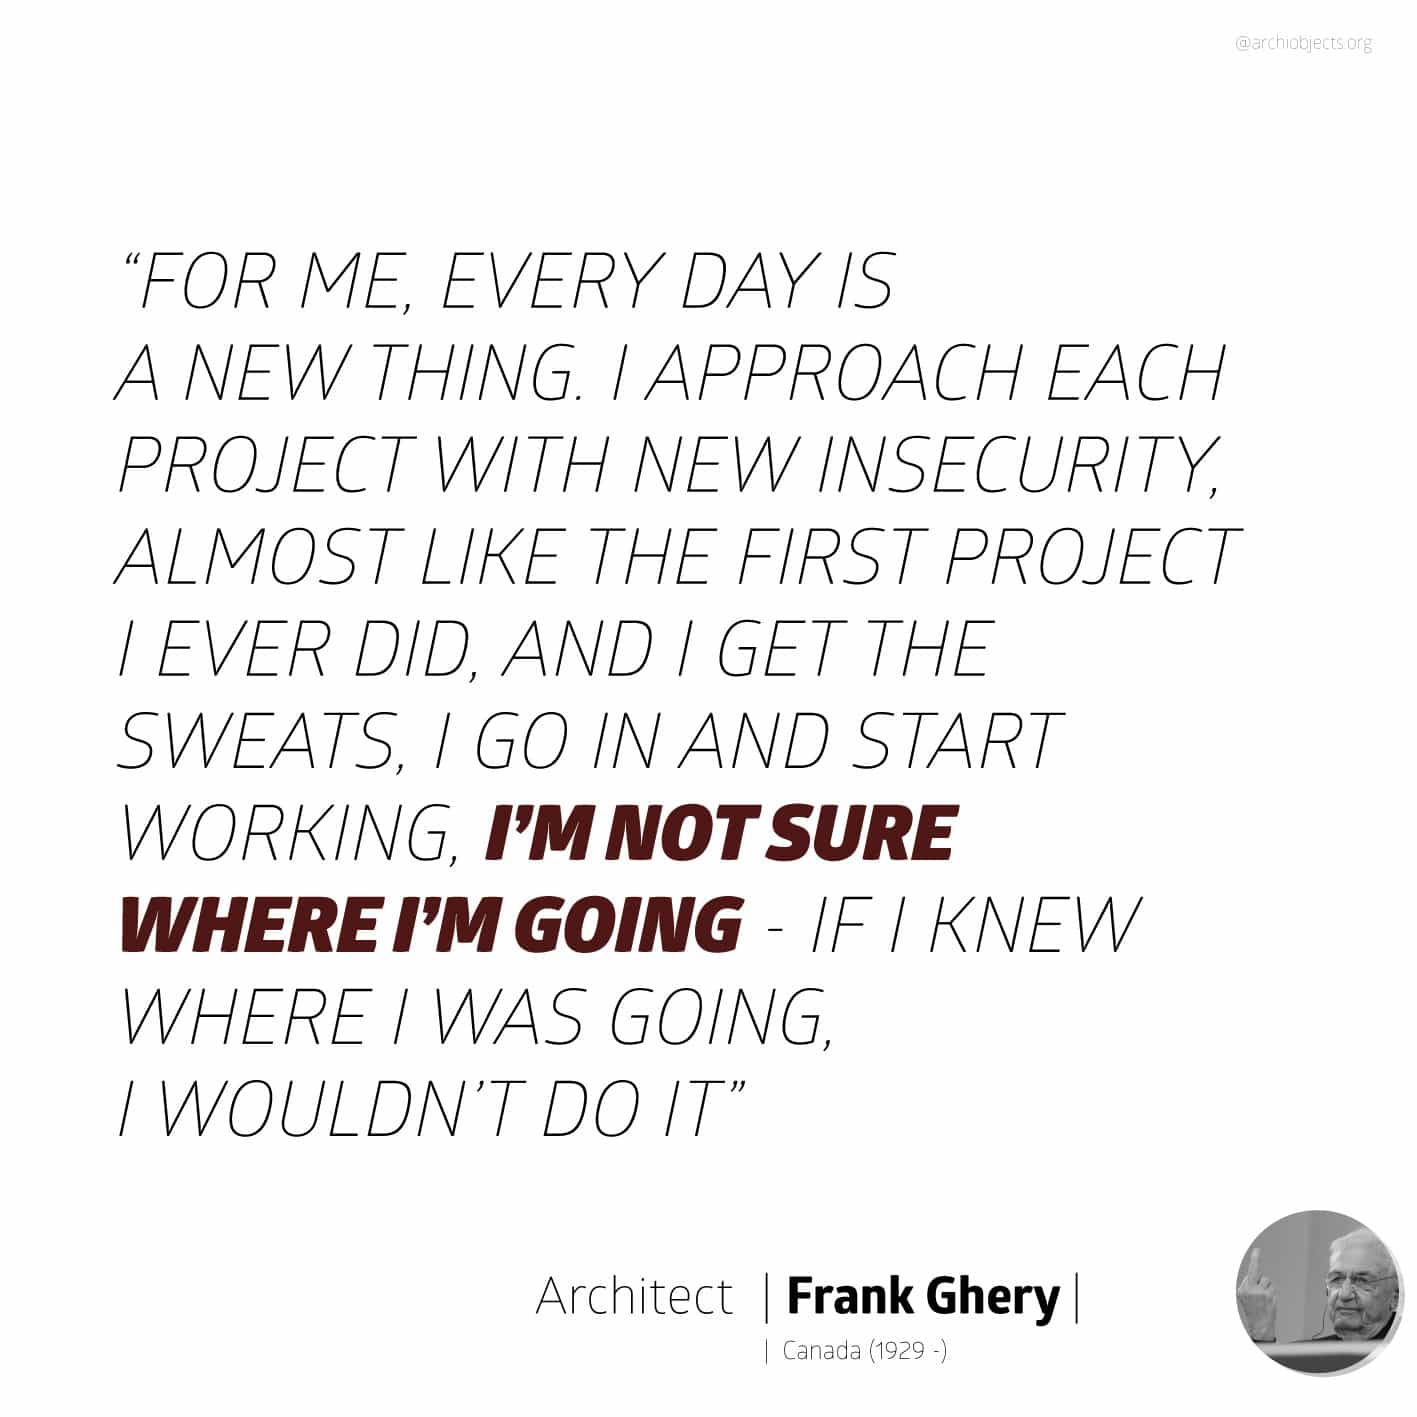 frank ghery quote Architectural Quotes - Worth spreading Architects' voice